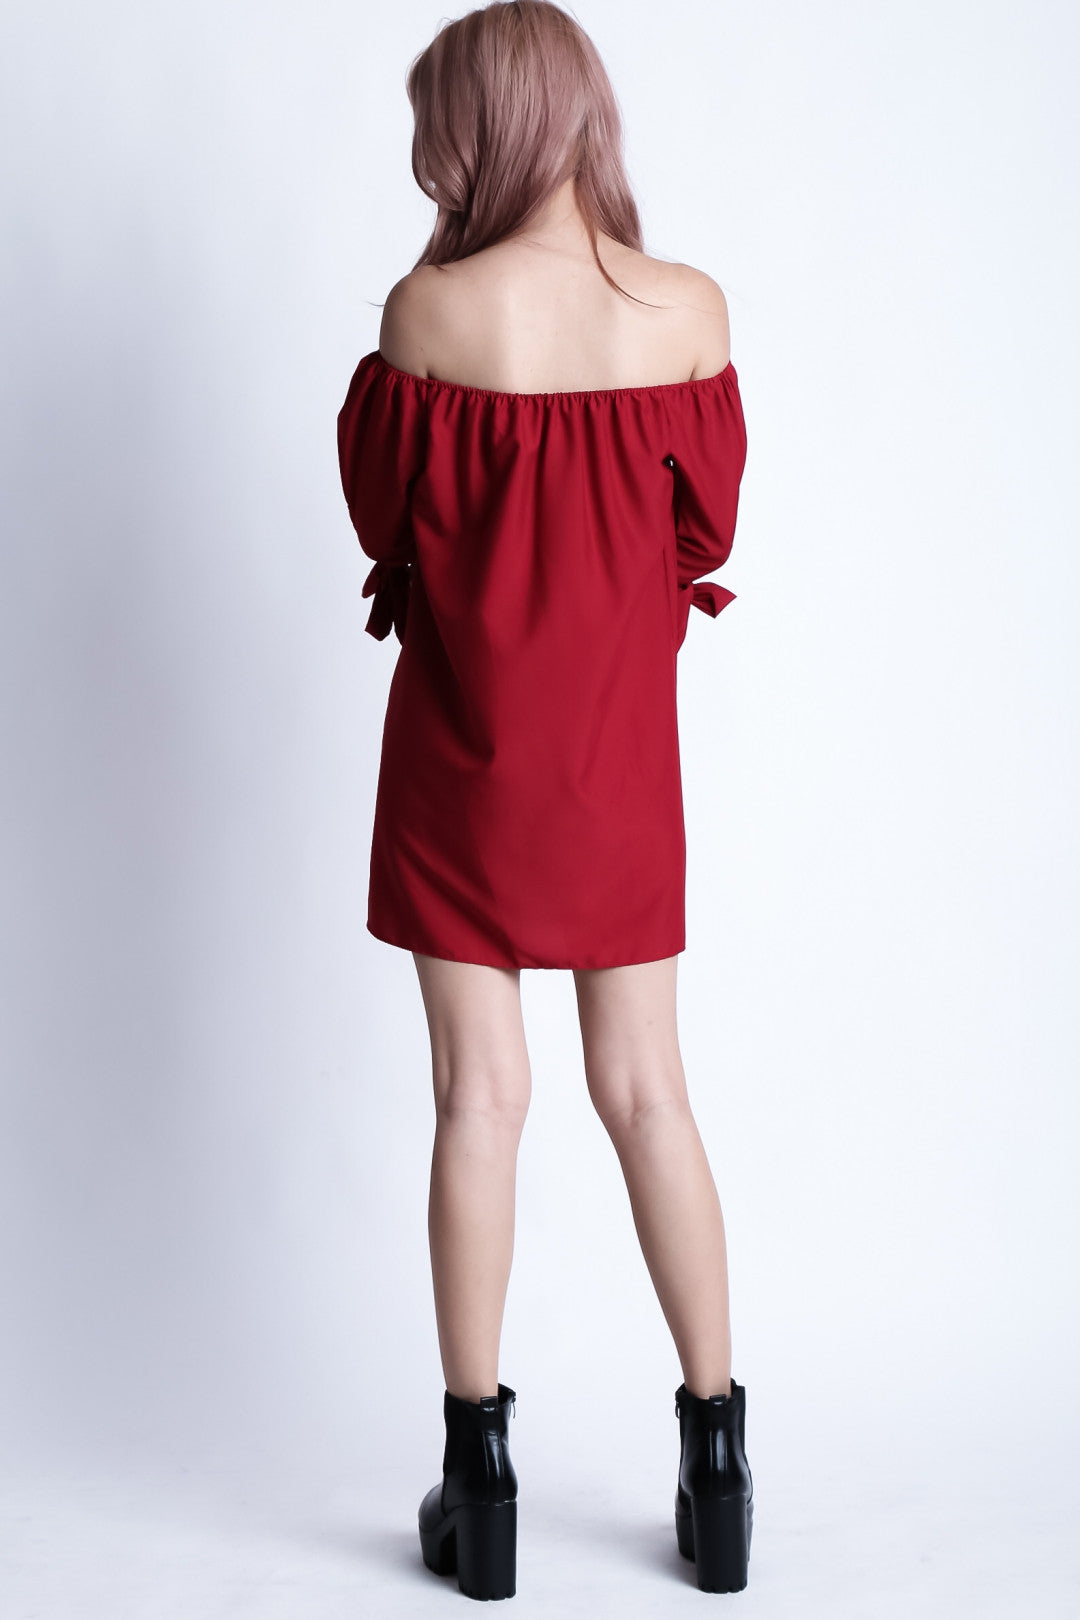 *RESTOCKED* ESTELLA RIBBON OFFSIE DRESS IN WINE - TOPAZETTE